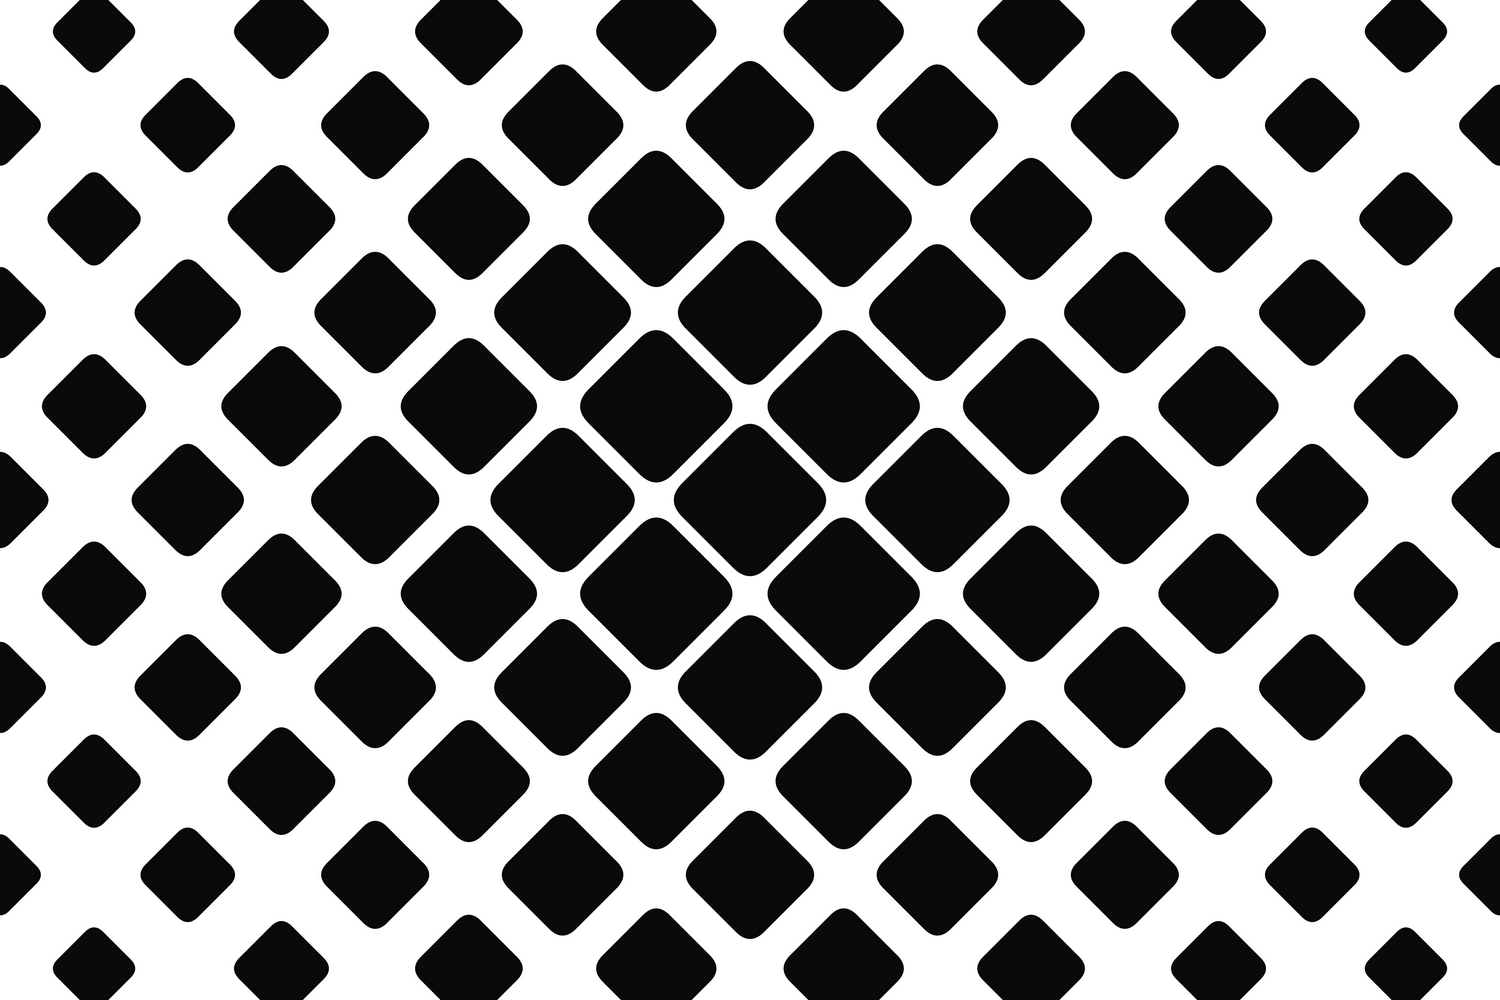 15 square patterns EPS, AI, SVG, JPG 5000x5000 example image 3